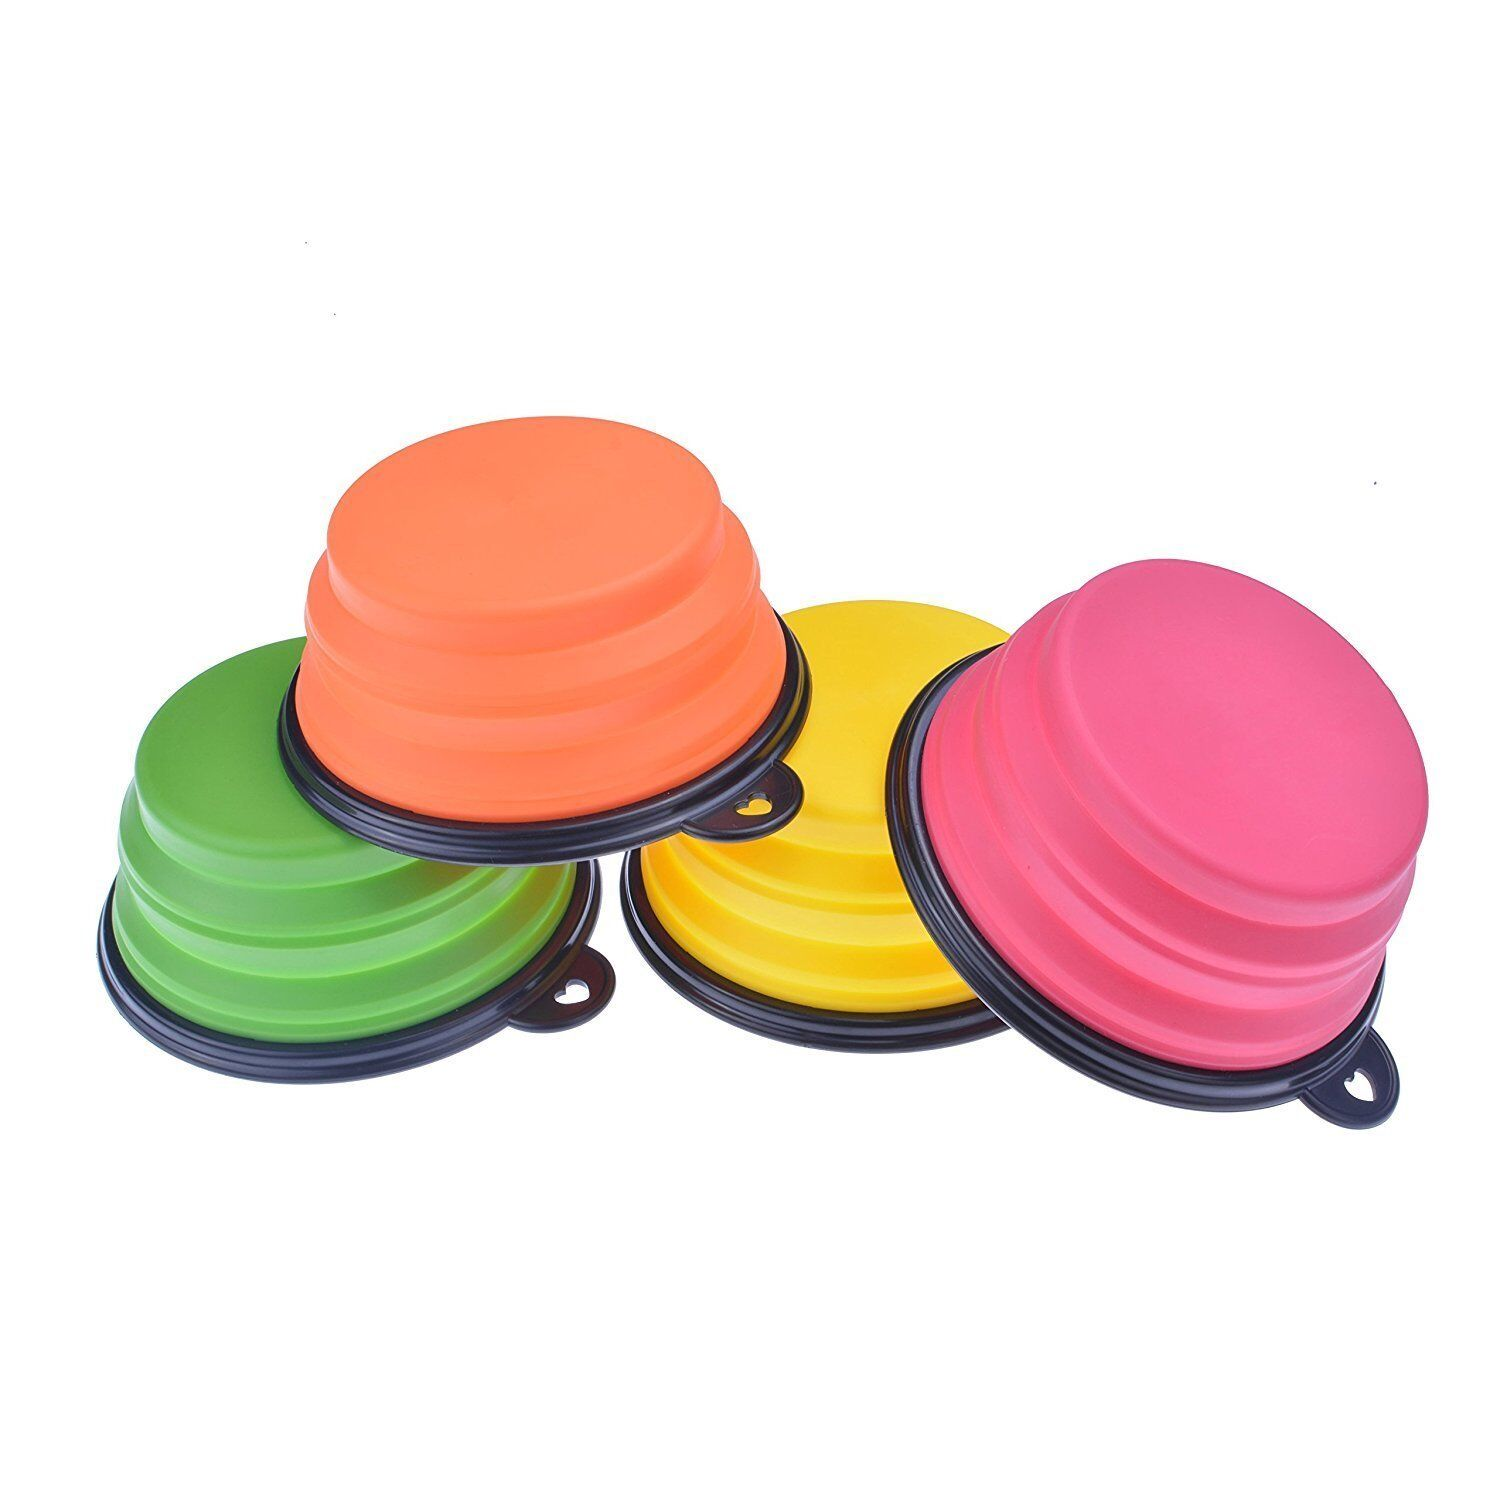 4 Portable Travel Collapsible Foldable Pet Dog Bowl for Food & Water Bowls Dish Dishes, Feeders & Fountains